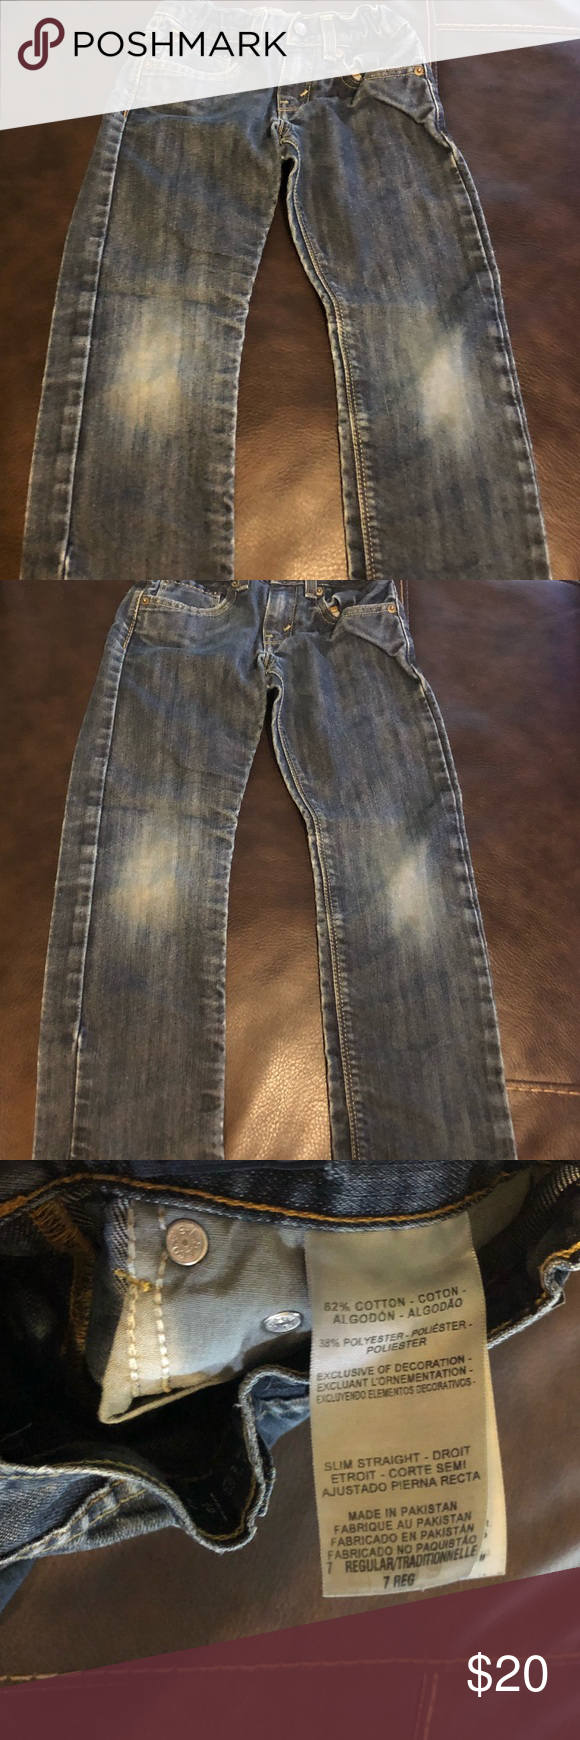 8c54c31fd9d Boys Levi's denizen Boys Levi's denizen 218 slim straight fit size 7.  Gently used, has some wear on the knees as shown in pics.